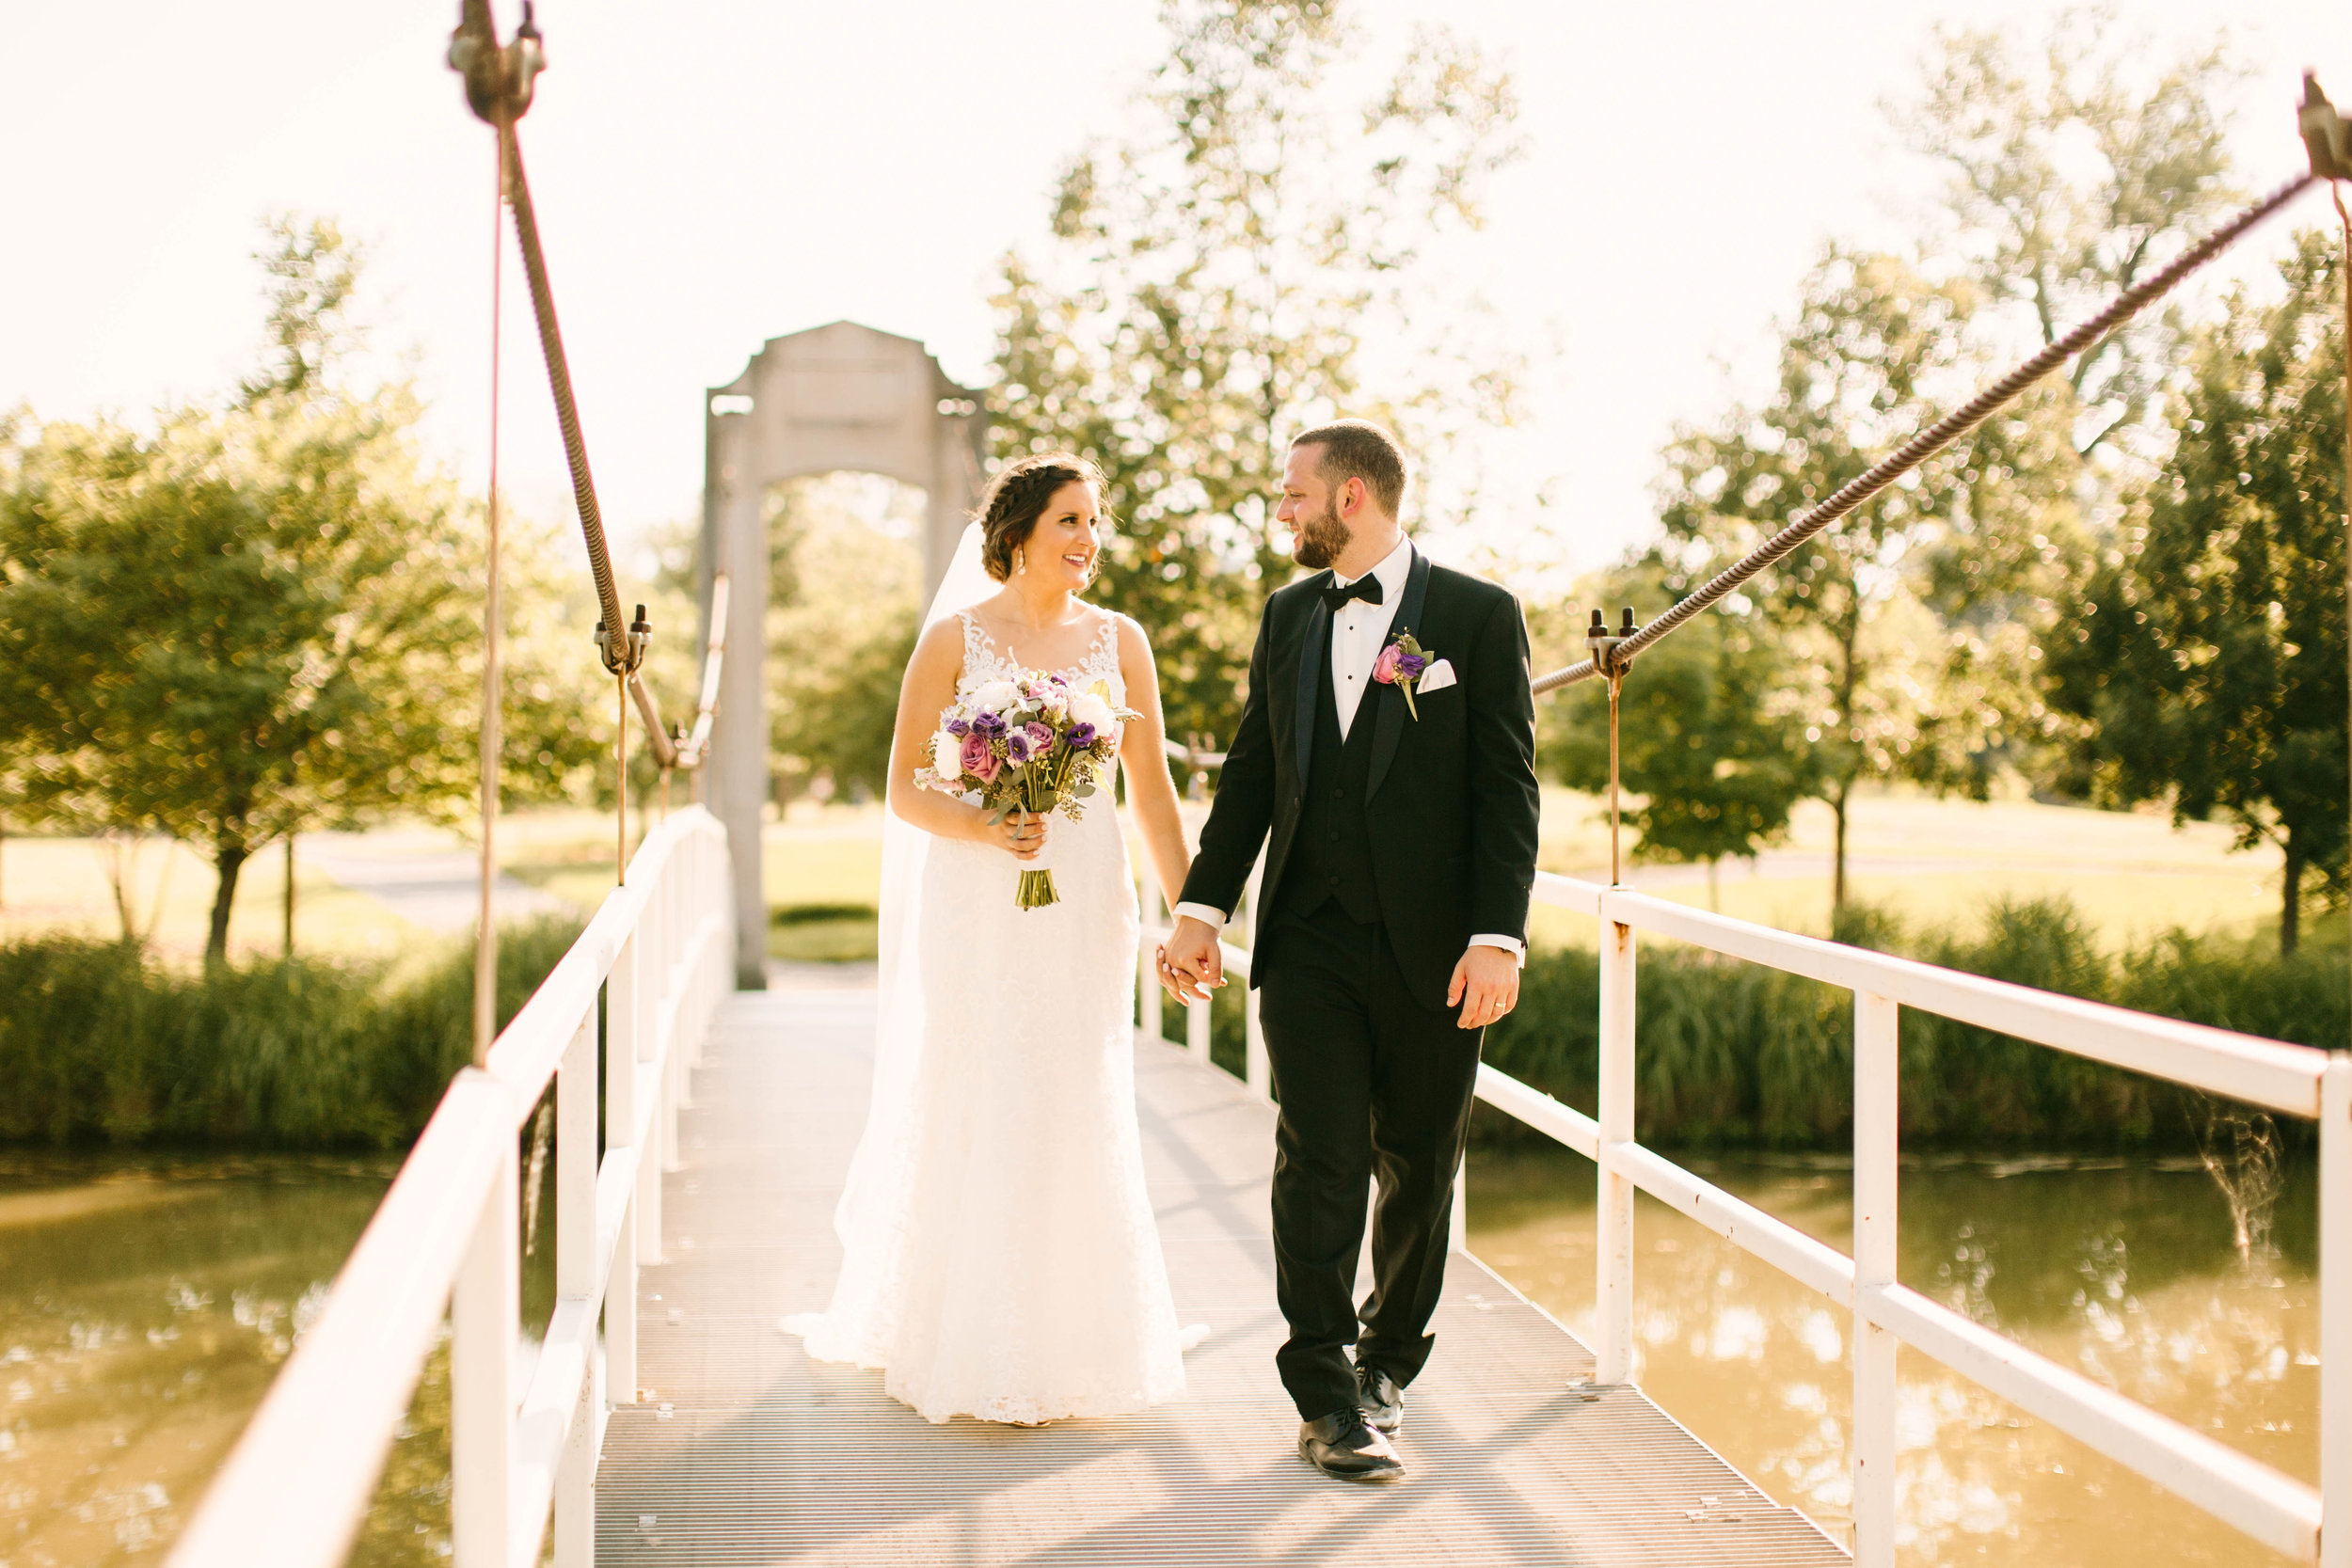 Michael + Maggie St. Louis wedding-Veronica Young Photography-98.jpg